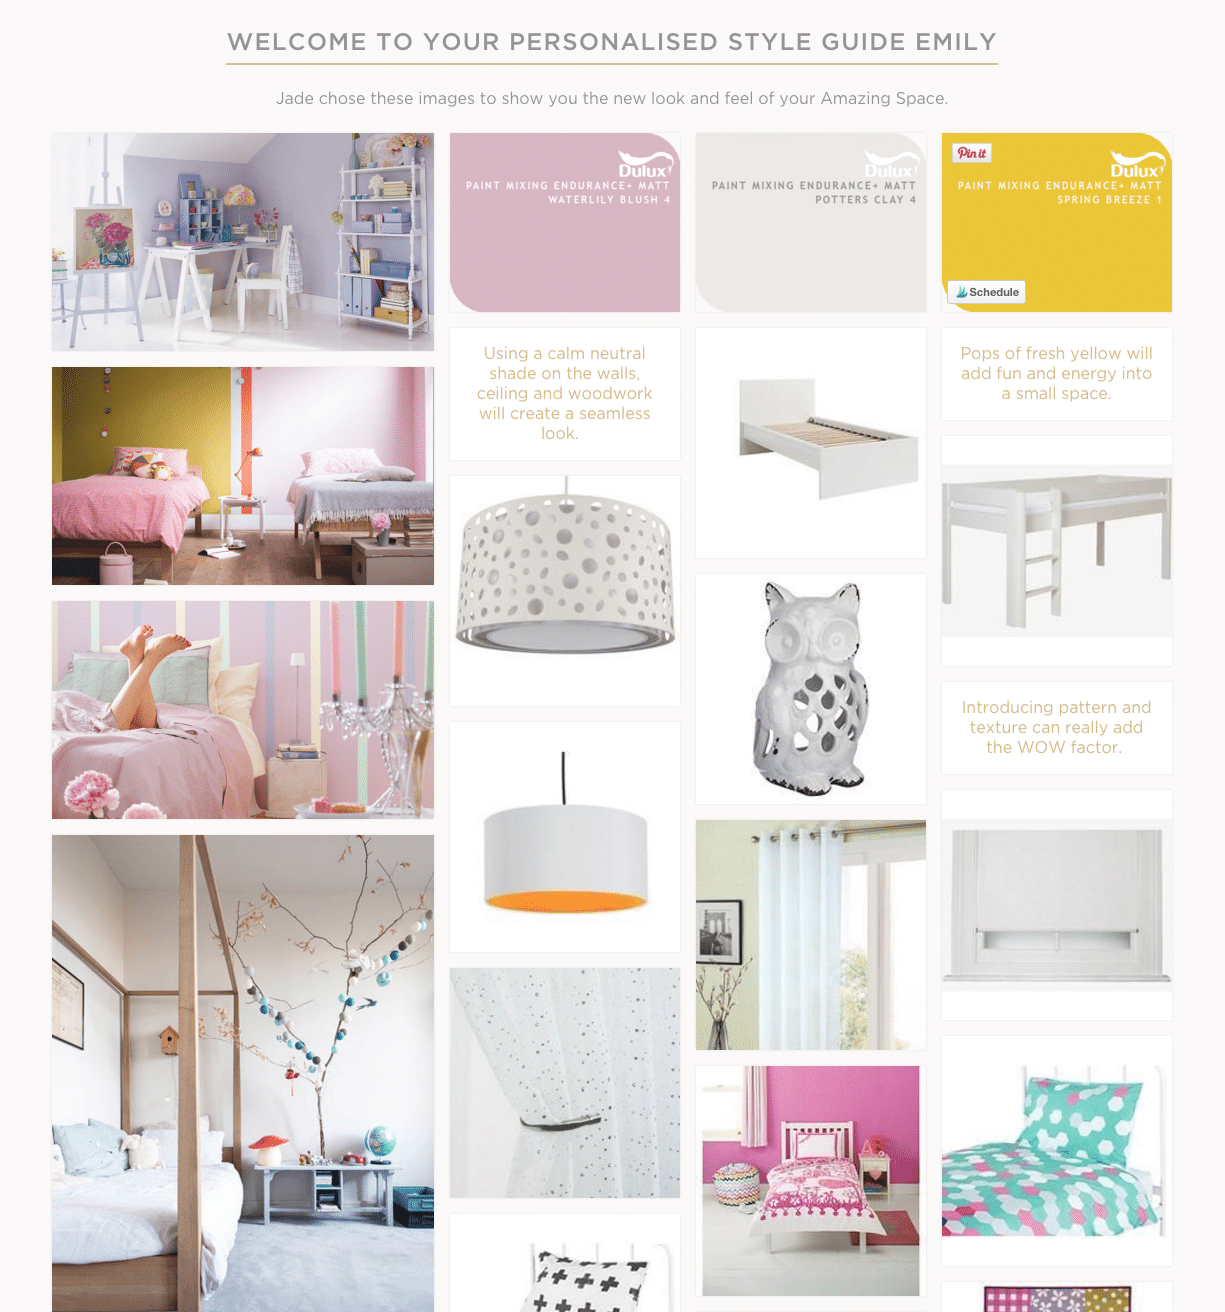 Bedroom - Personalised style guide